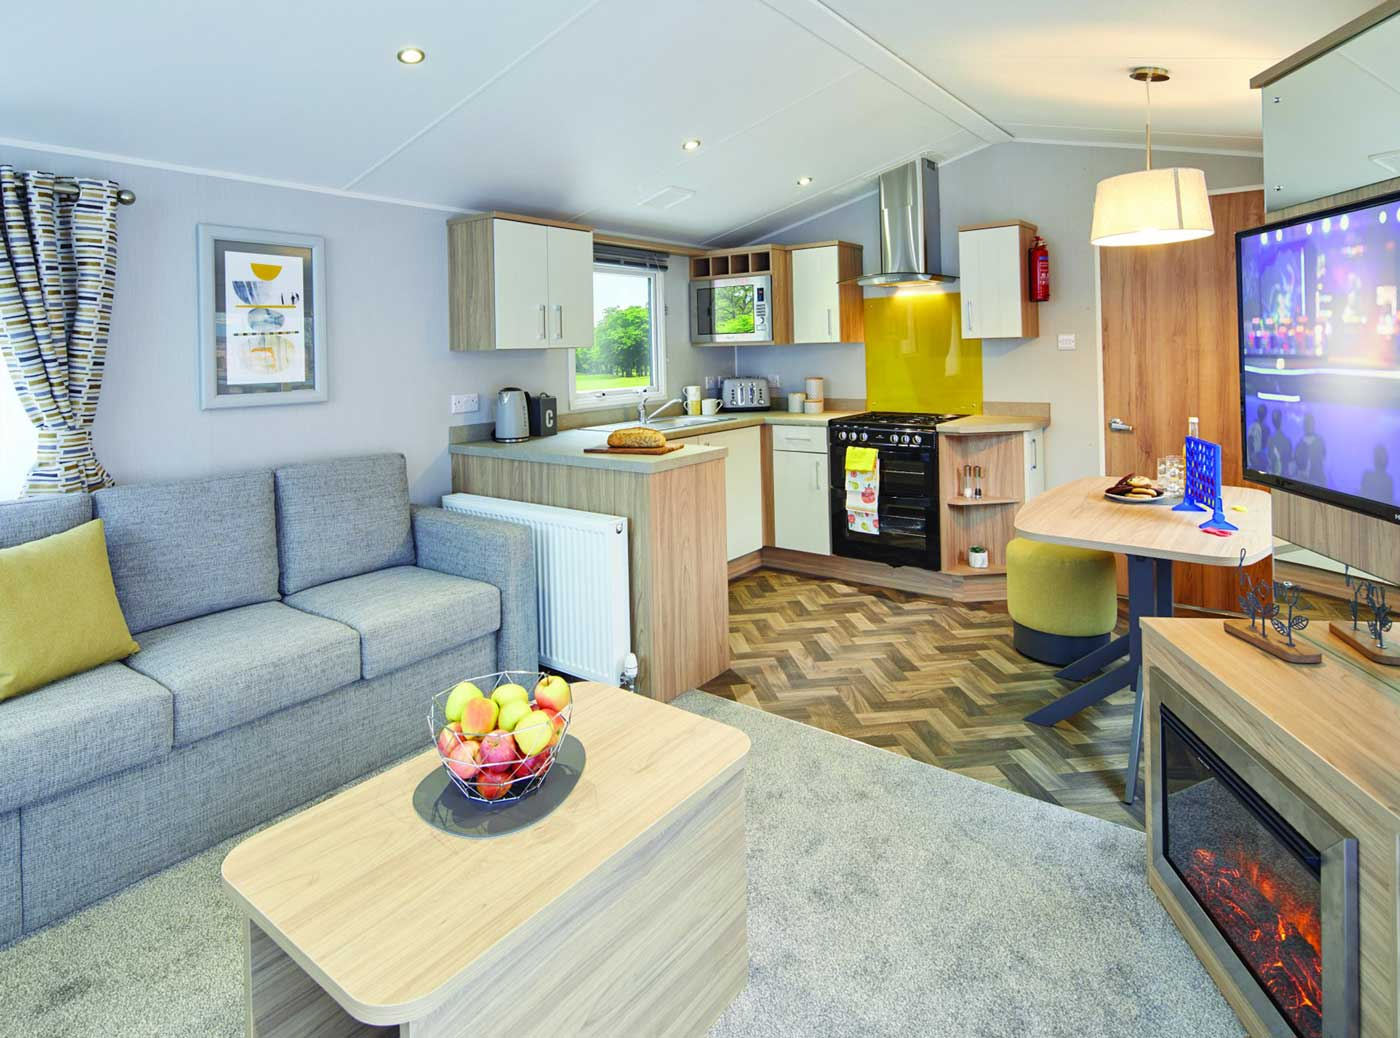 Site tours and Static Caravans now released for sale.